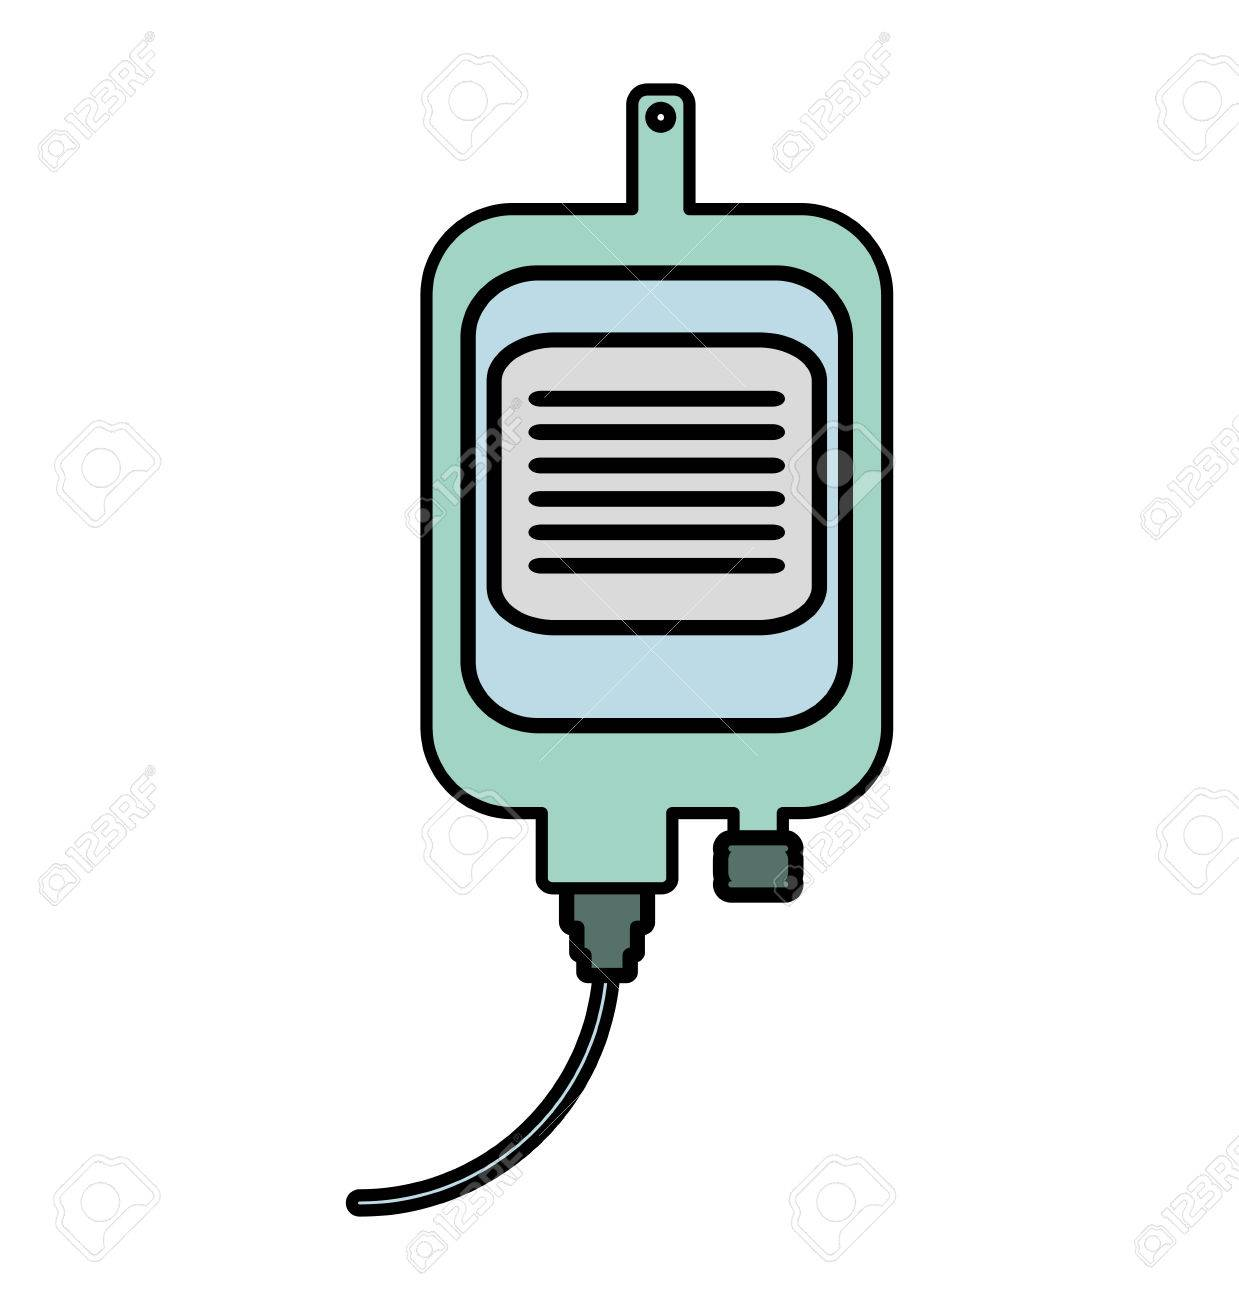 iv bag medical isolated icon vector illustration design royalty free rh 123rf com